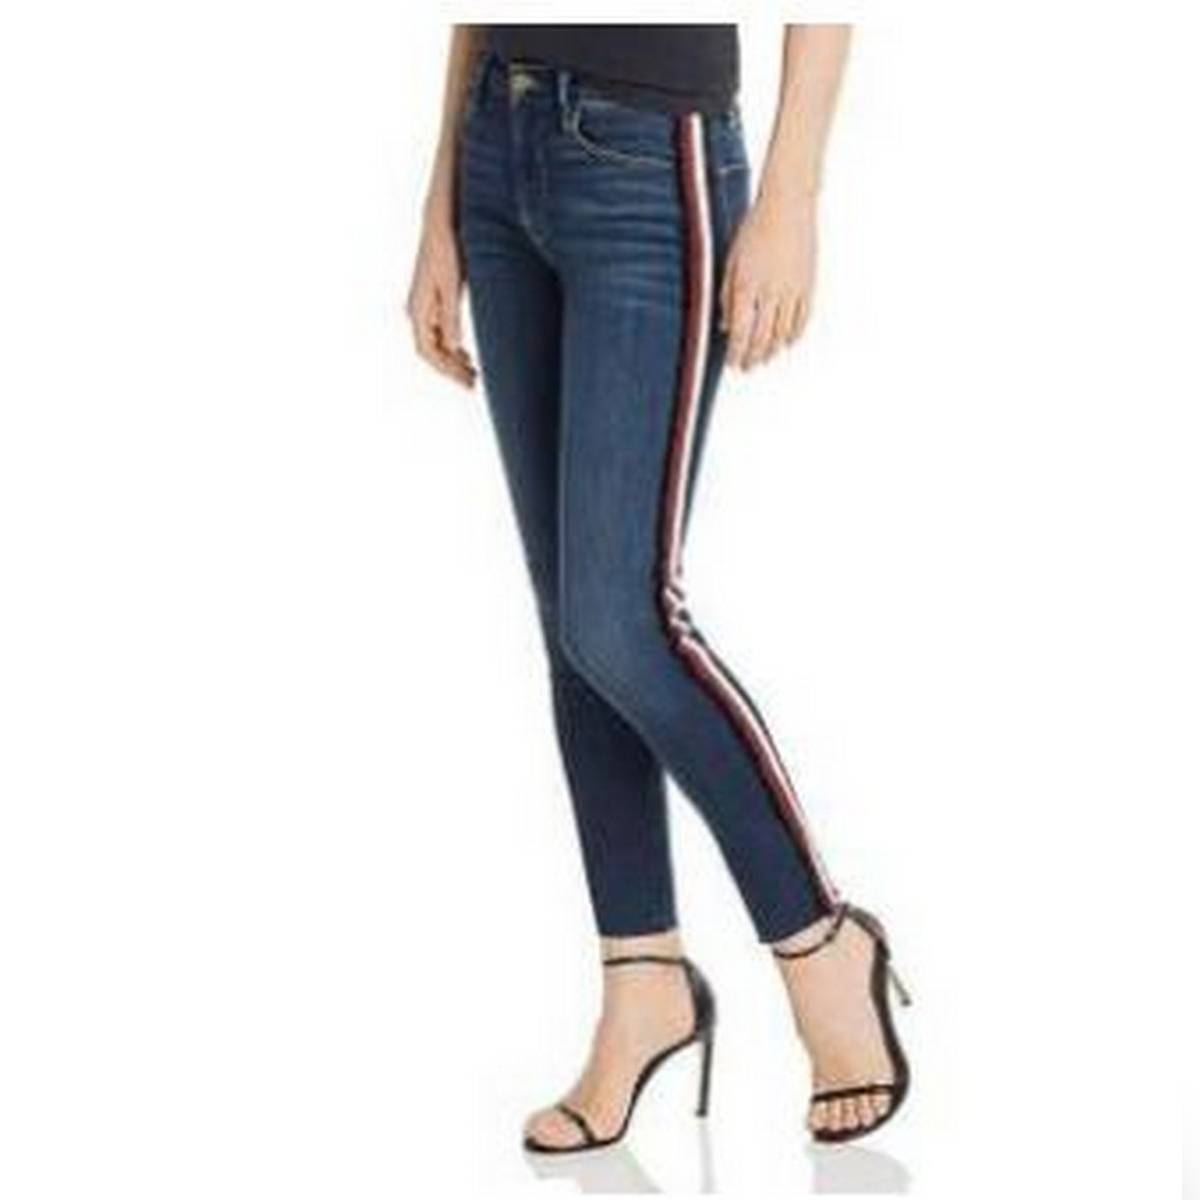 New Arrival Young Women strip Girls Denim Jeans Sale High Quality Pants